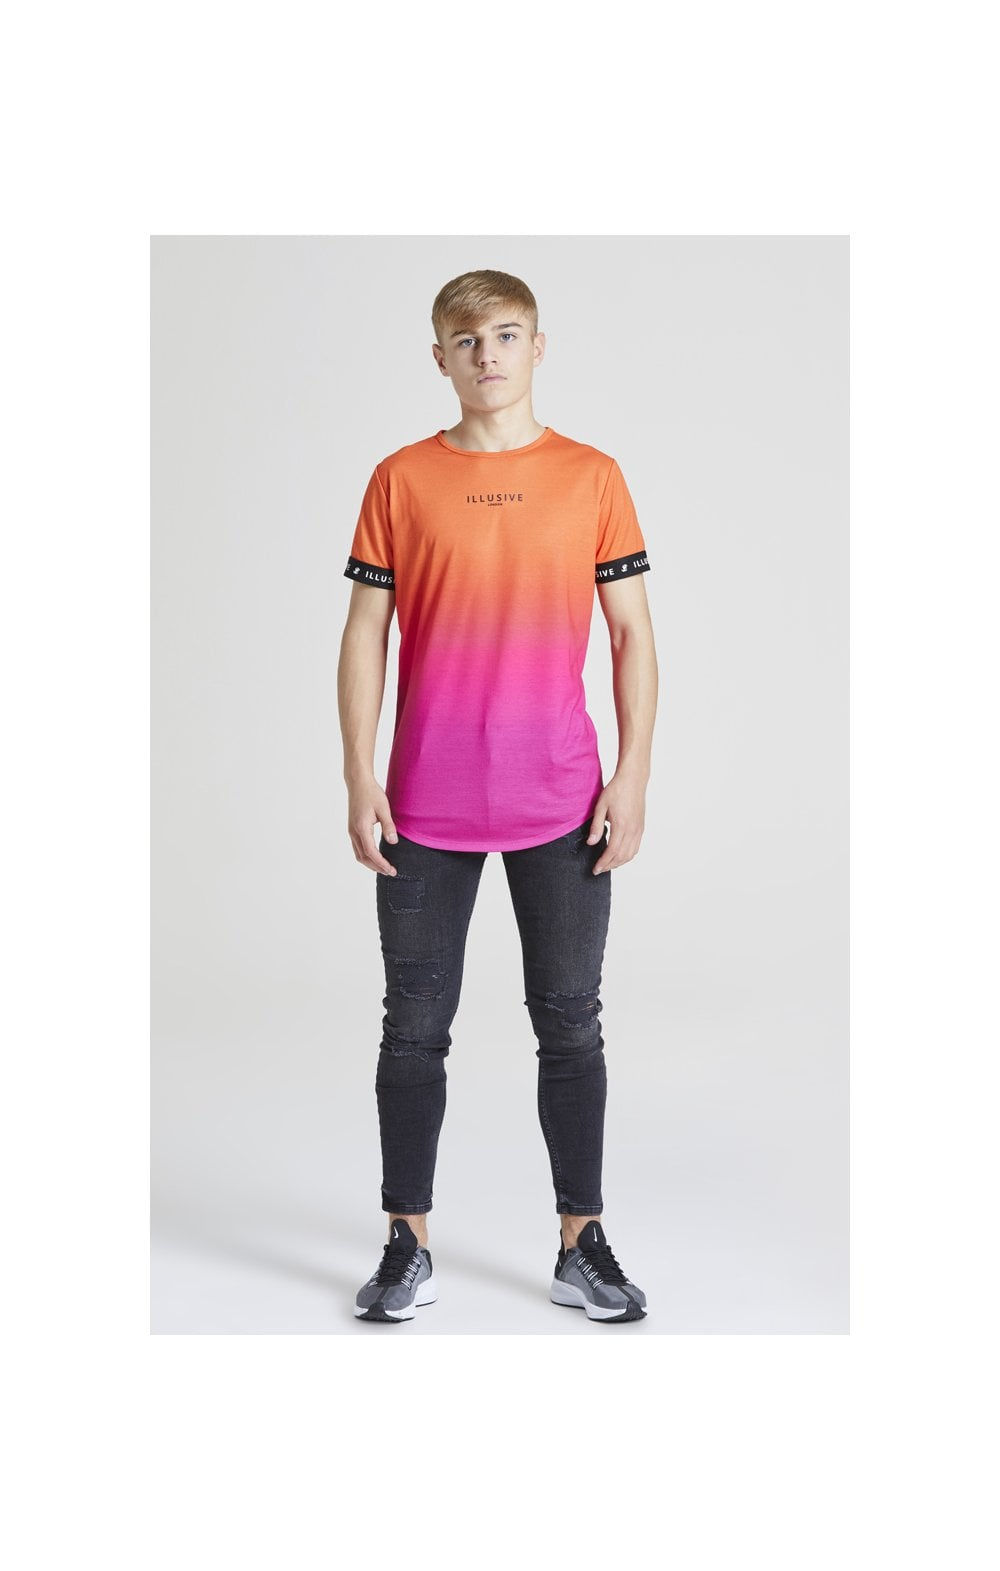 Illusive London Fade Tech Tee - Orange & Pink (3)